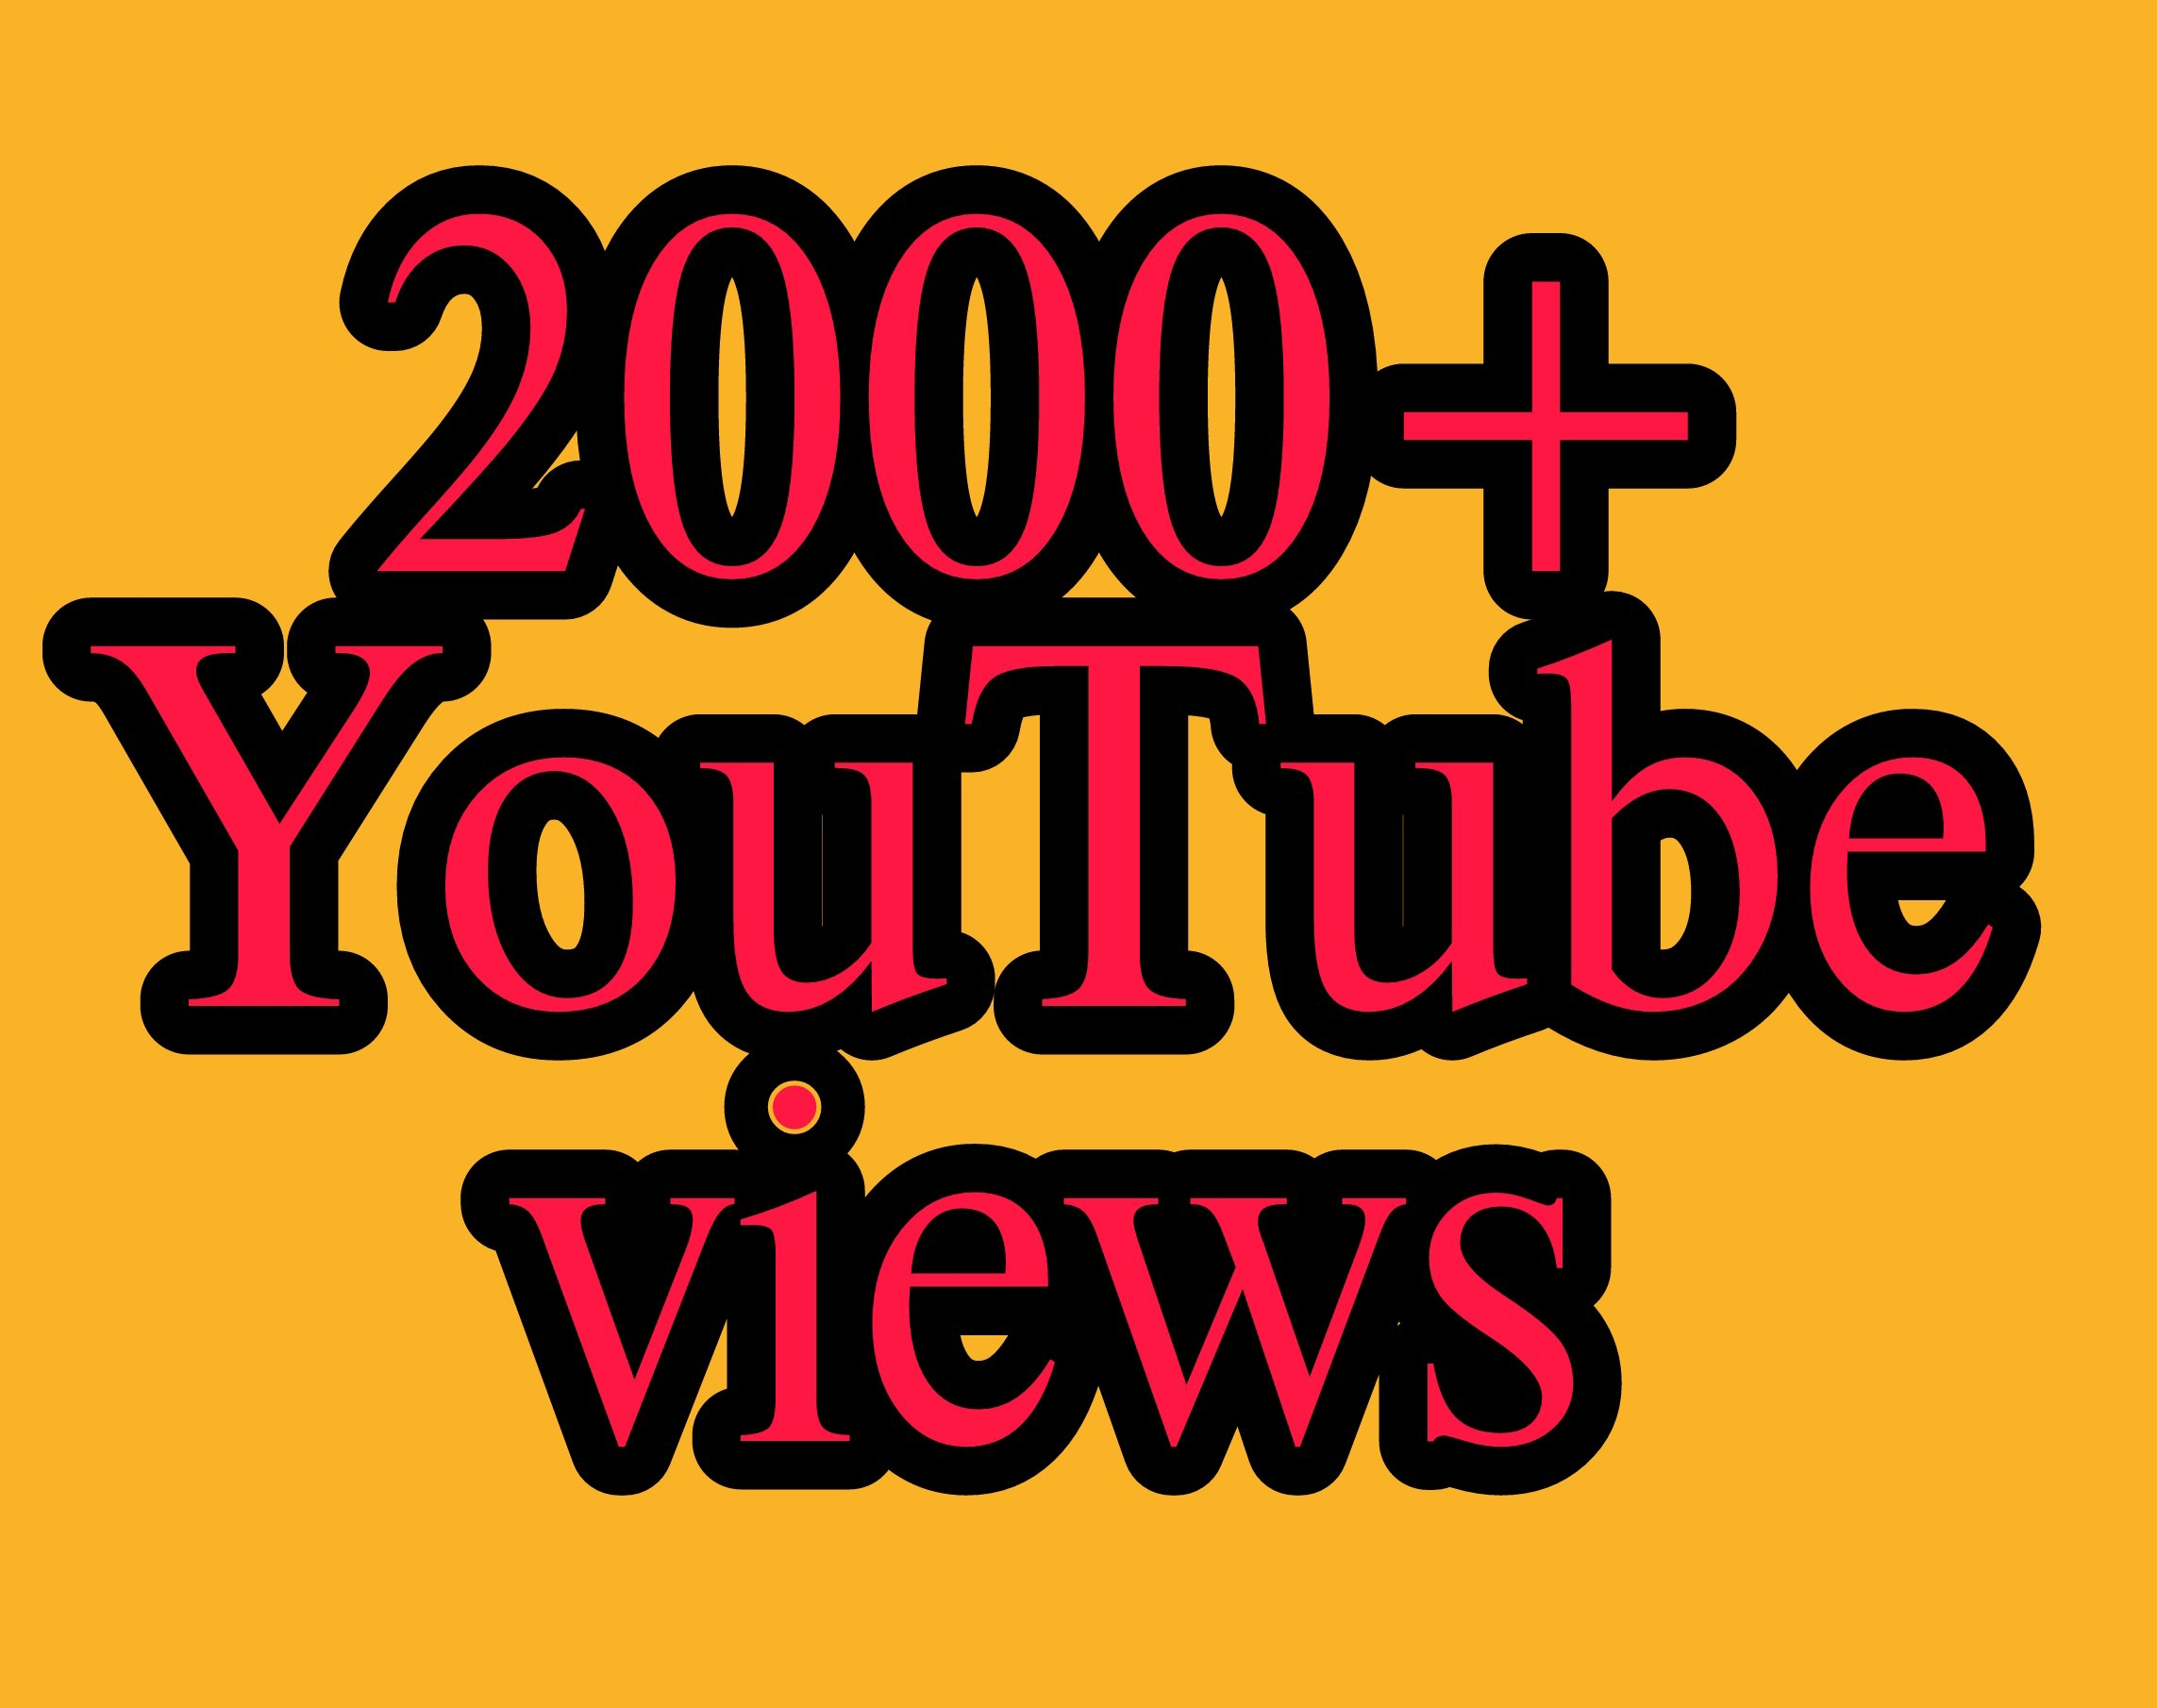 Safe 2000+ You Tube Vie ws nondrop instant work